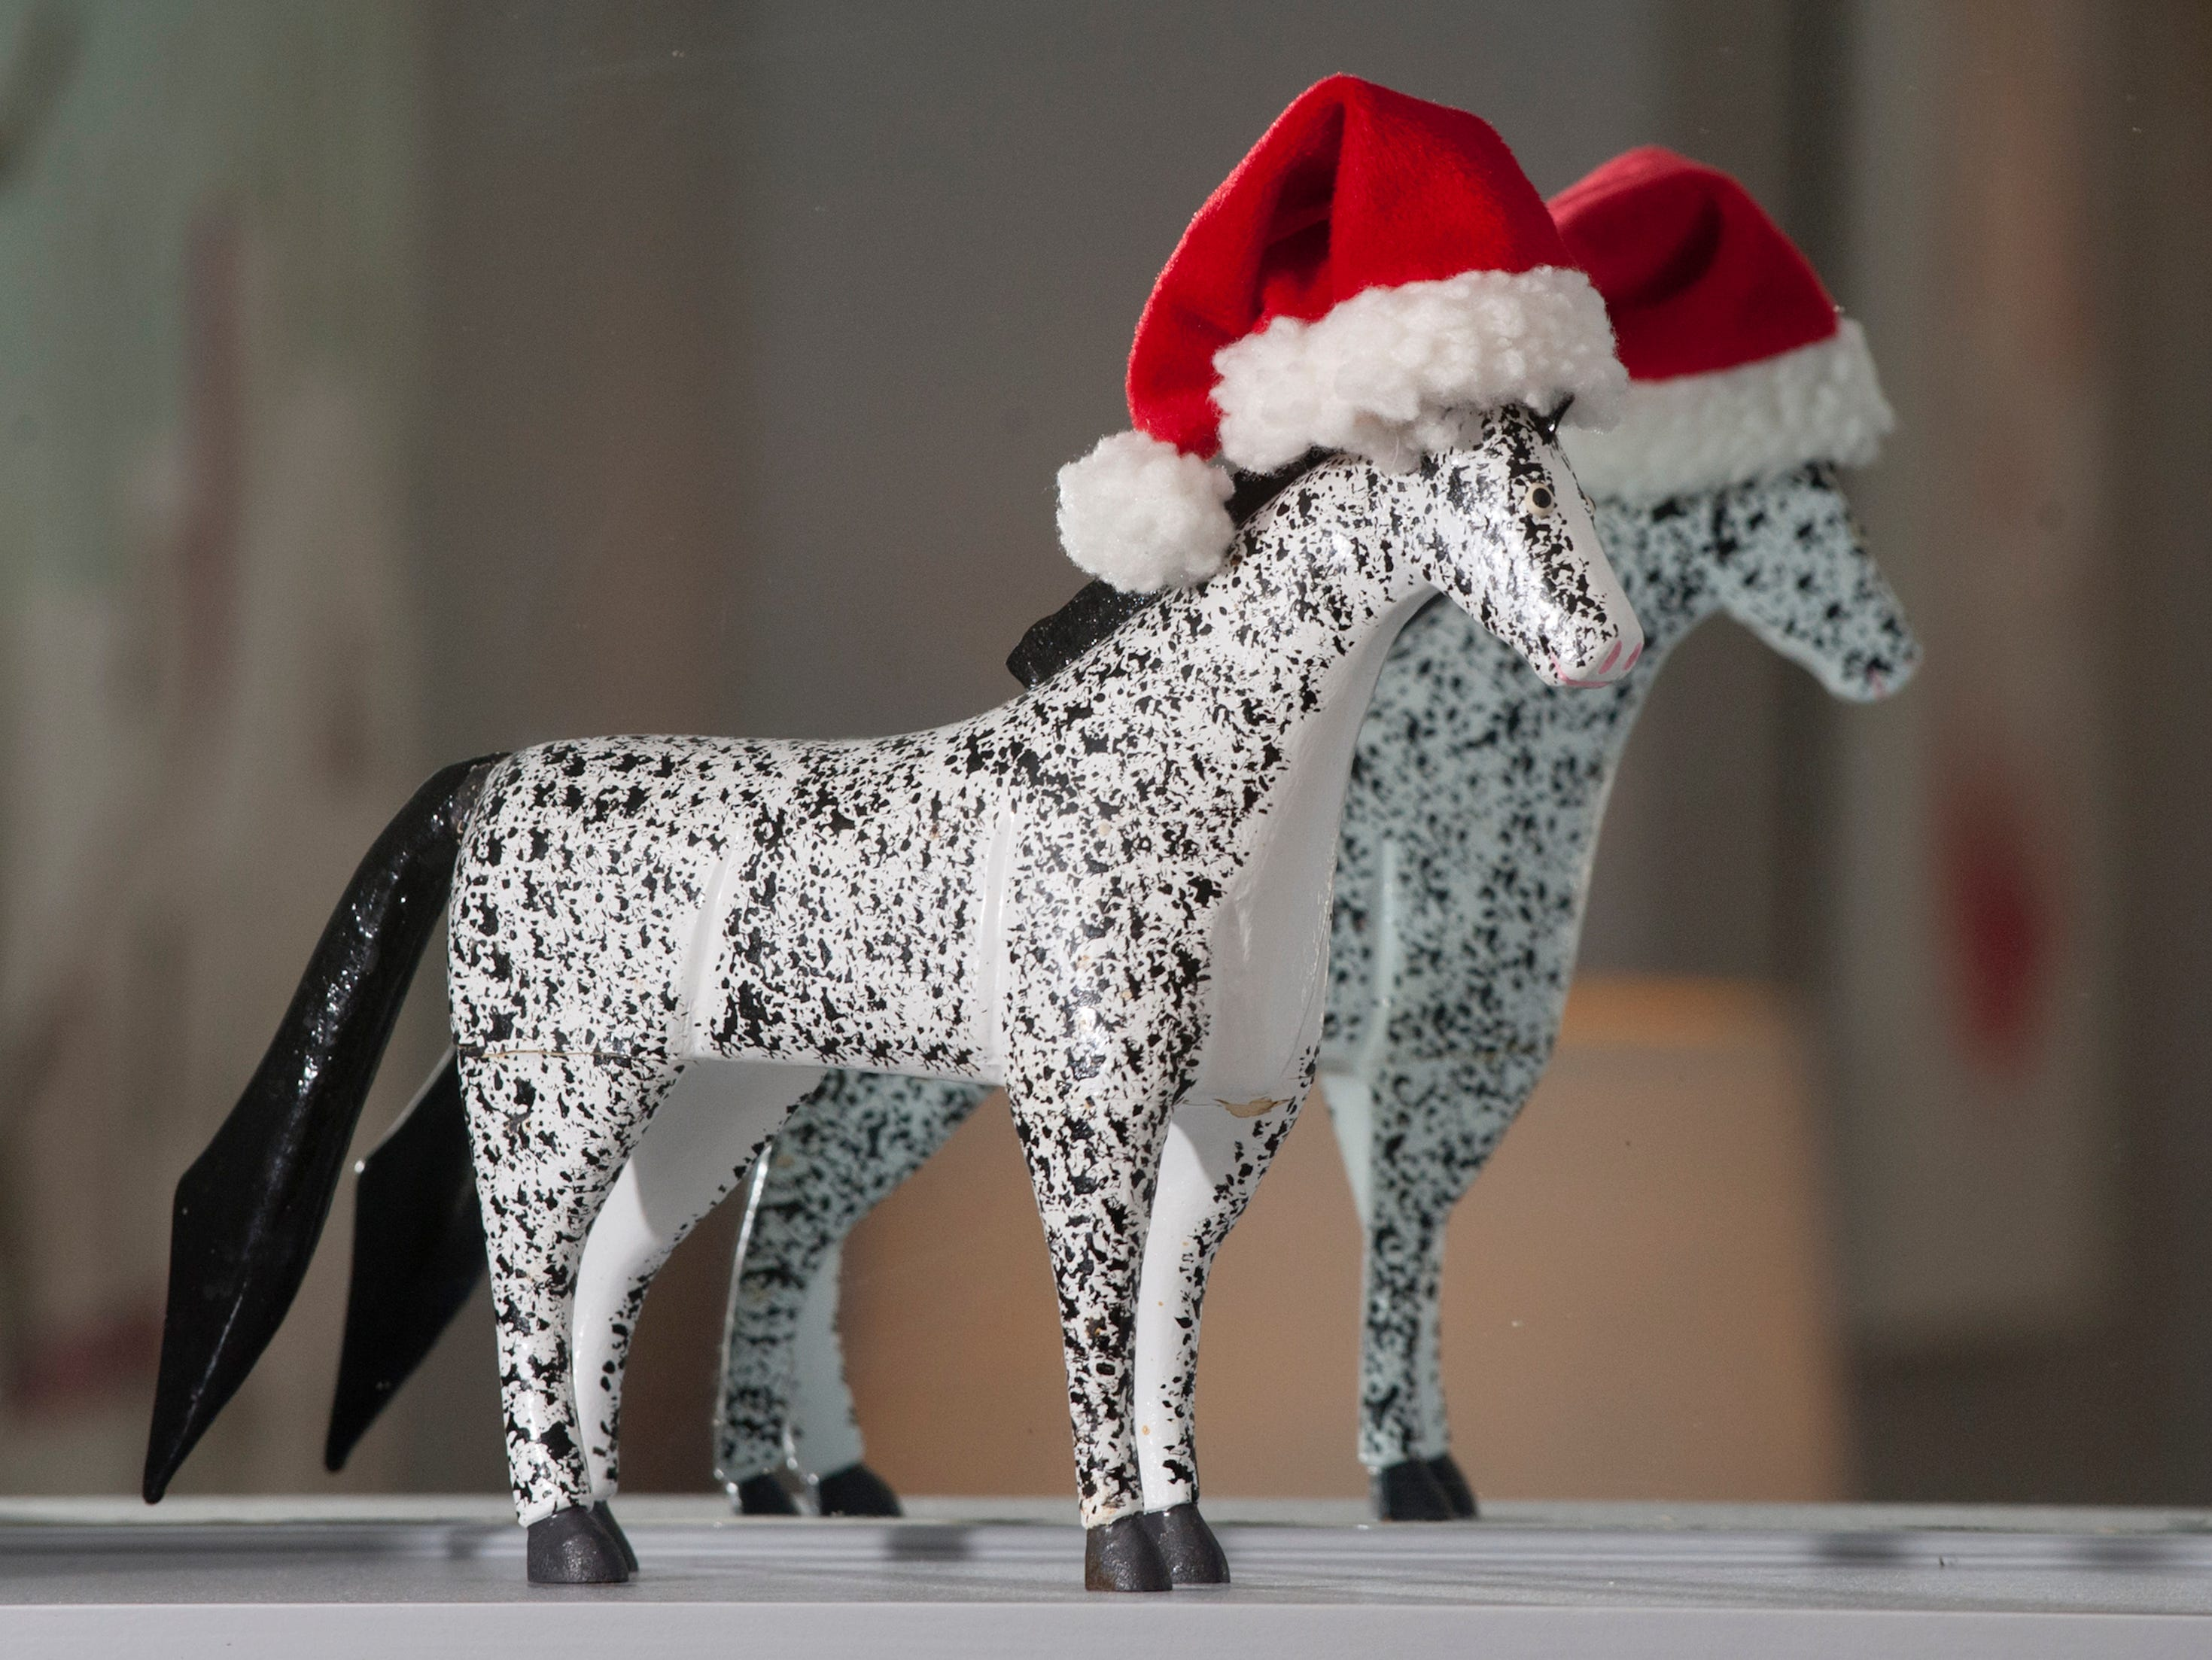 A horse made by Kentucky folk artists Lonnie and Twyla Money, is decorated with a small Santa had and sits on the shelf of the home's dining room. 10 December 2018